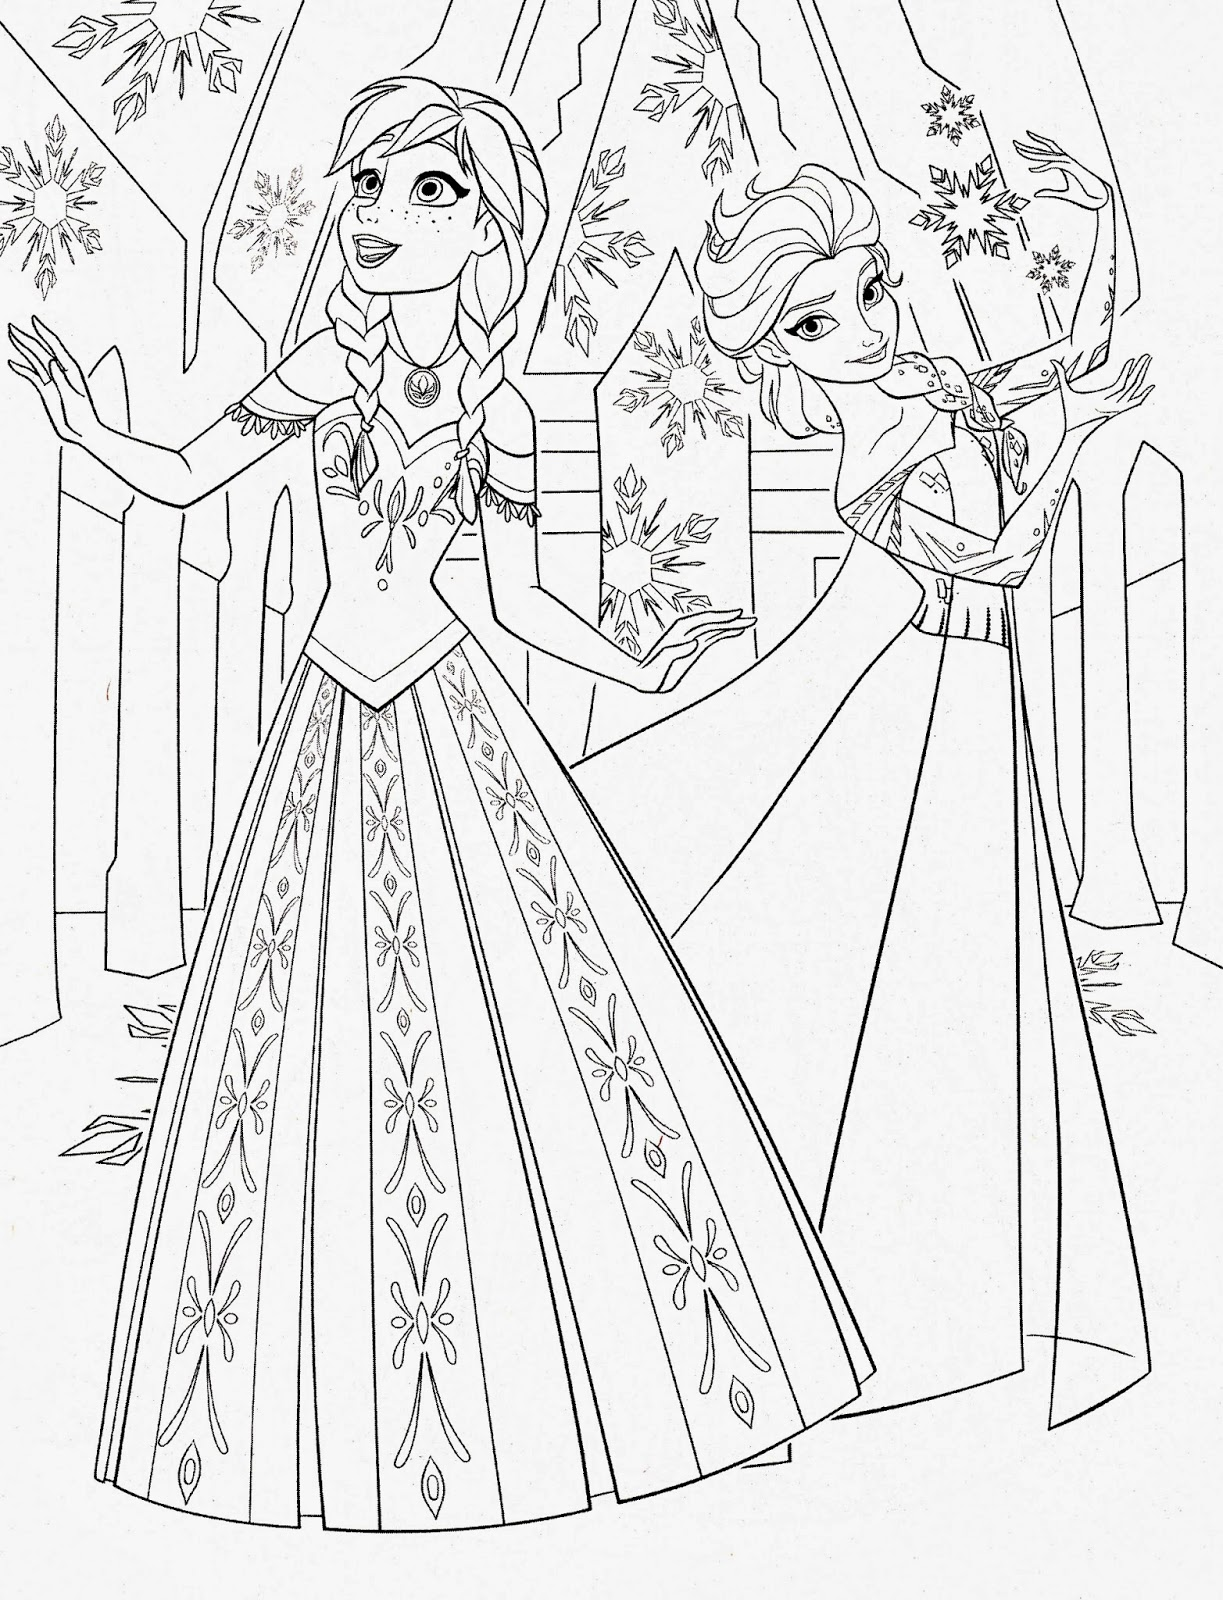 6 Images of Frozen Coloring Paper Dolls Printable